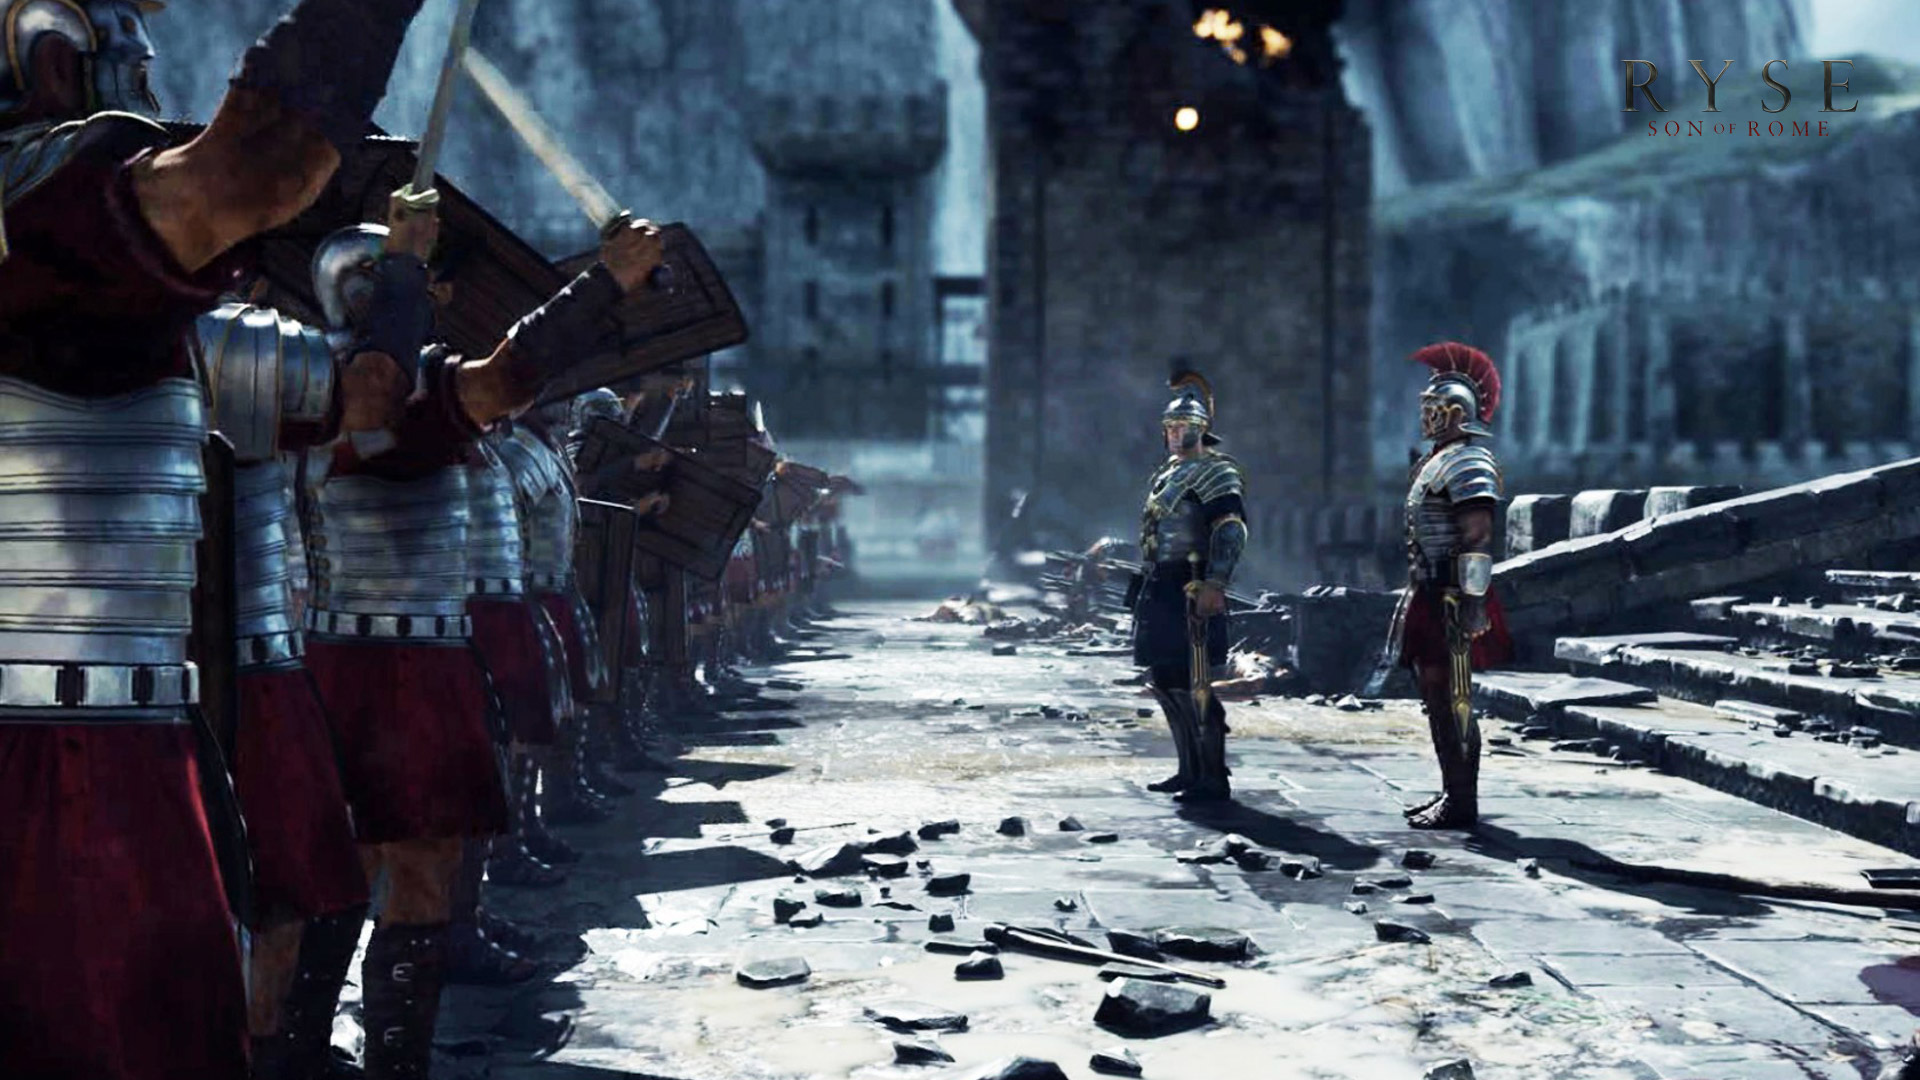 Free Ryse: Son of Rome Wallpaper in 1920x1080